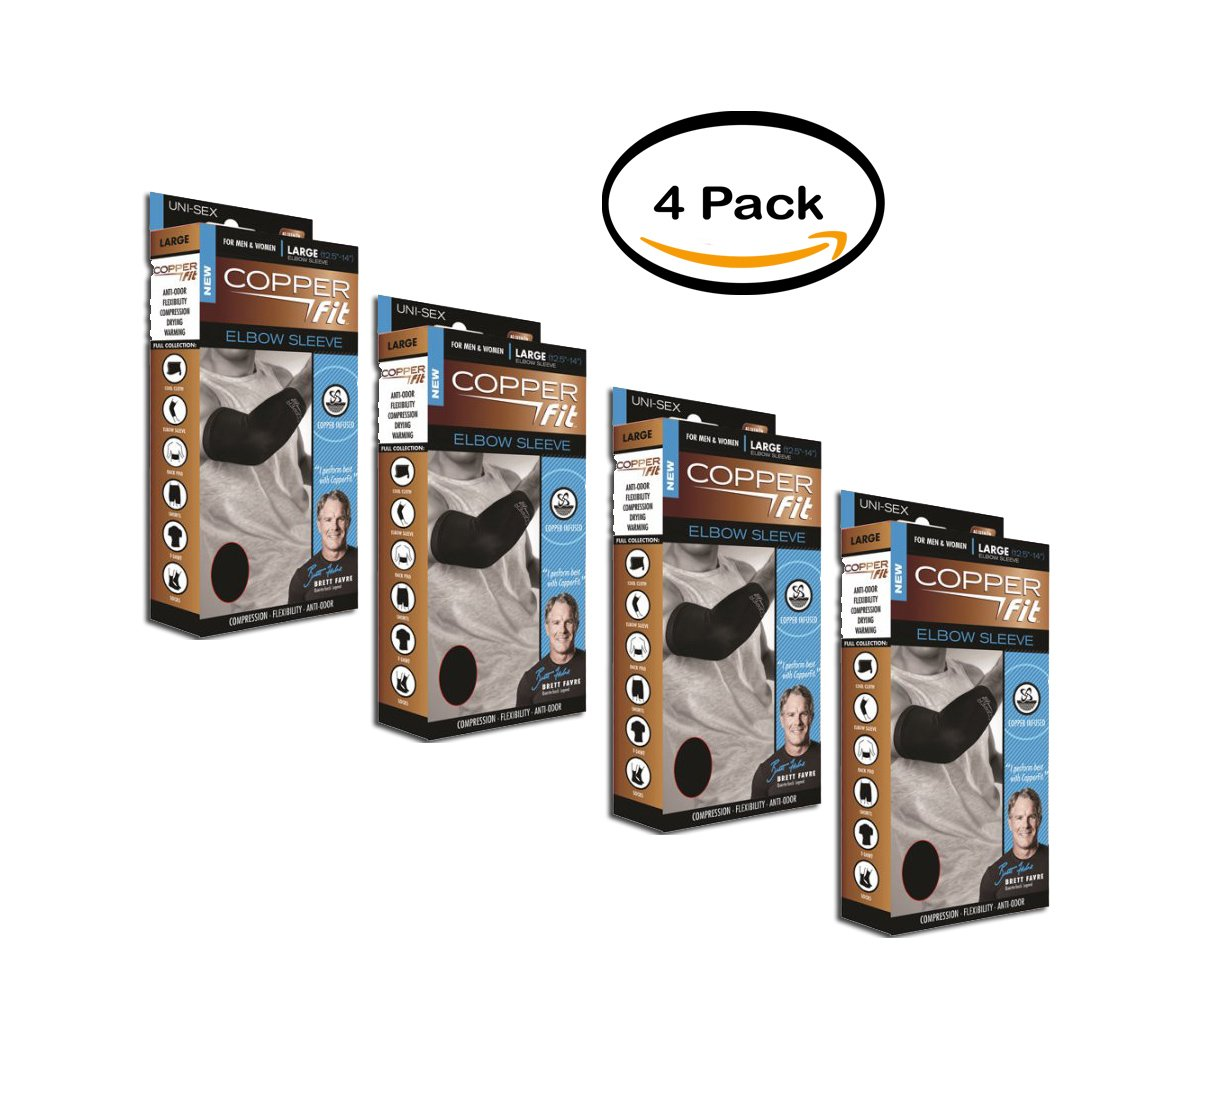 PACK OF 4 - Copper Fit Compression Elbow Sleeve, Medium by As Seen On TV